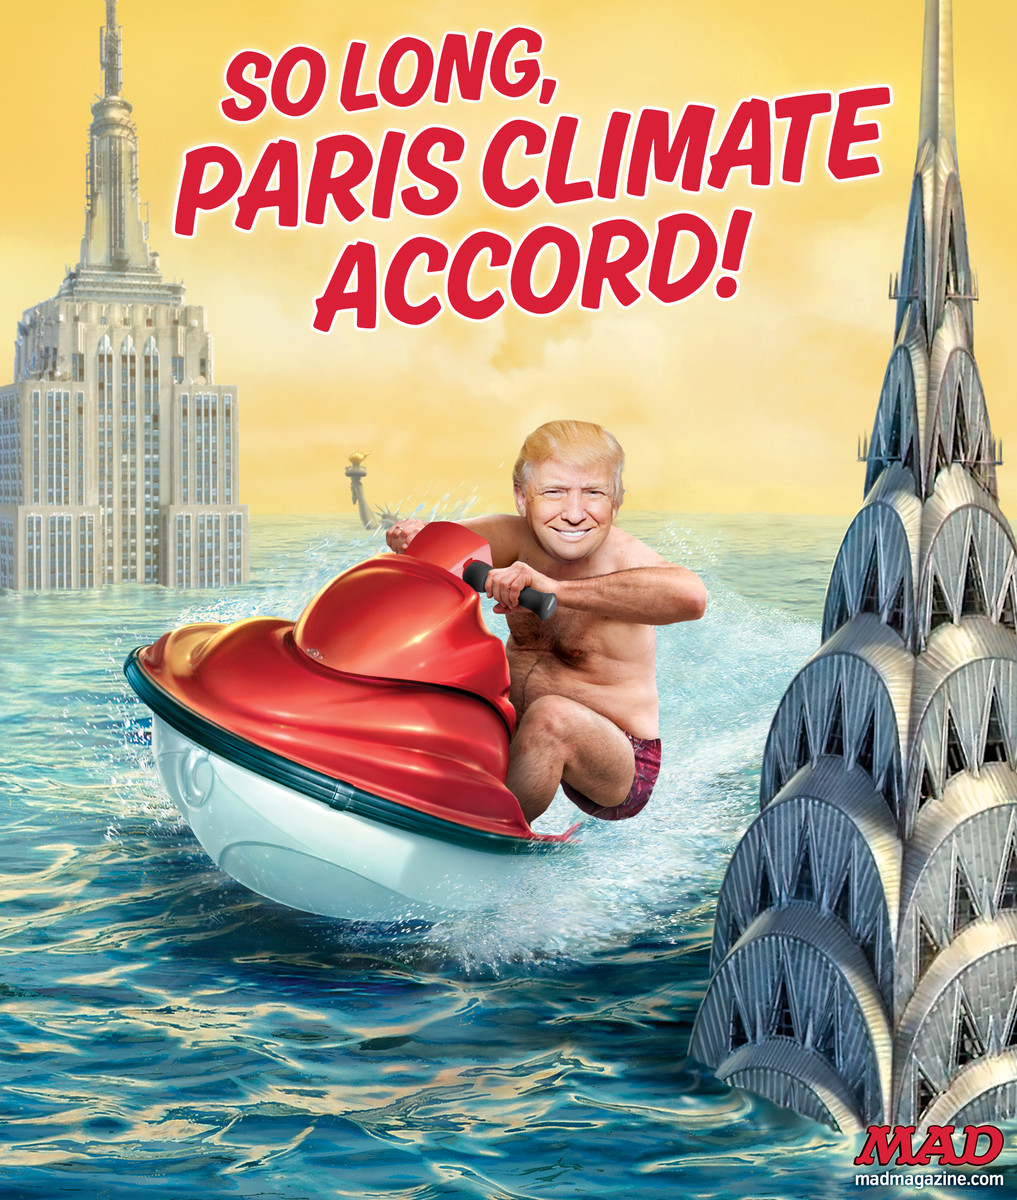 mad magazine donald trump paris accord so long climate change flooded new york city rising sea levels